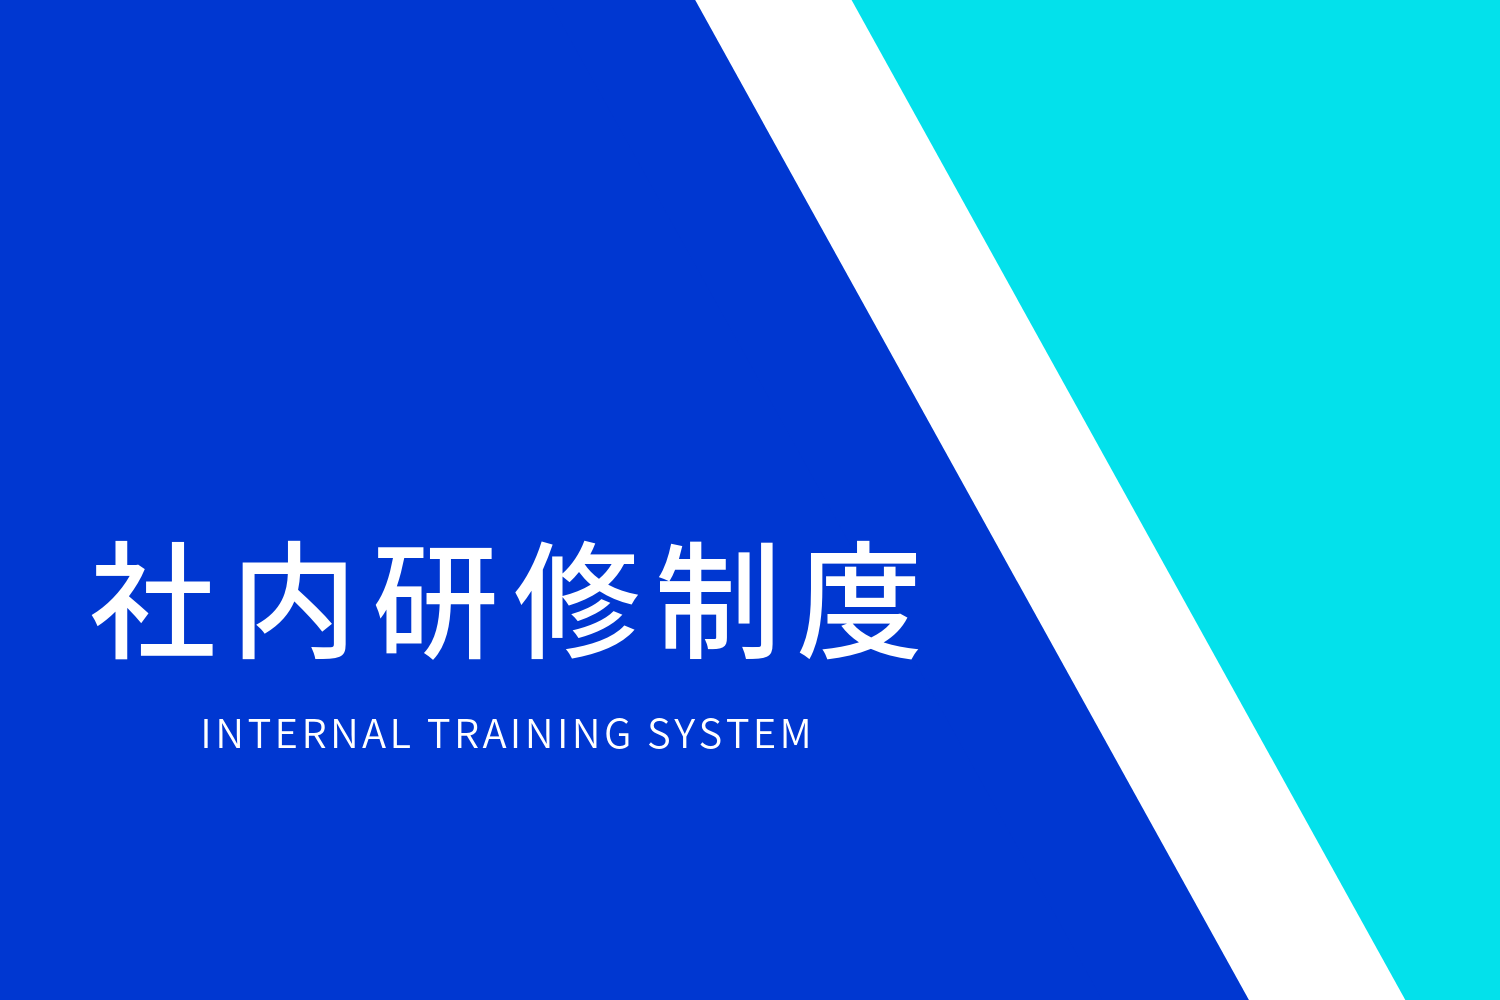 INTERNAL TRAINING SYSTEM